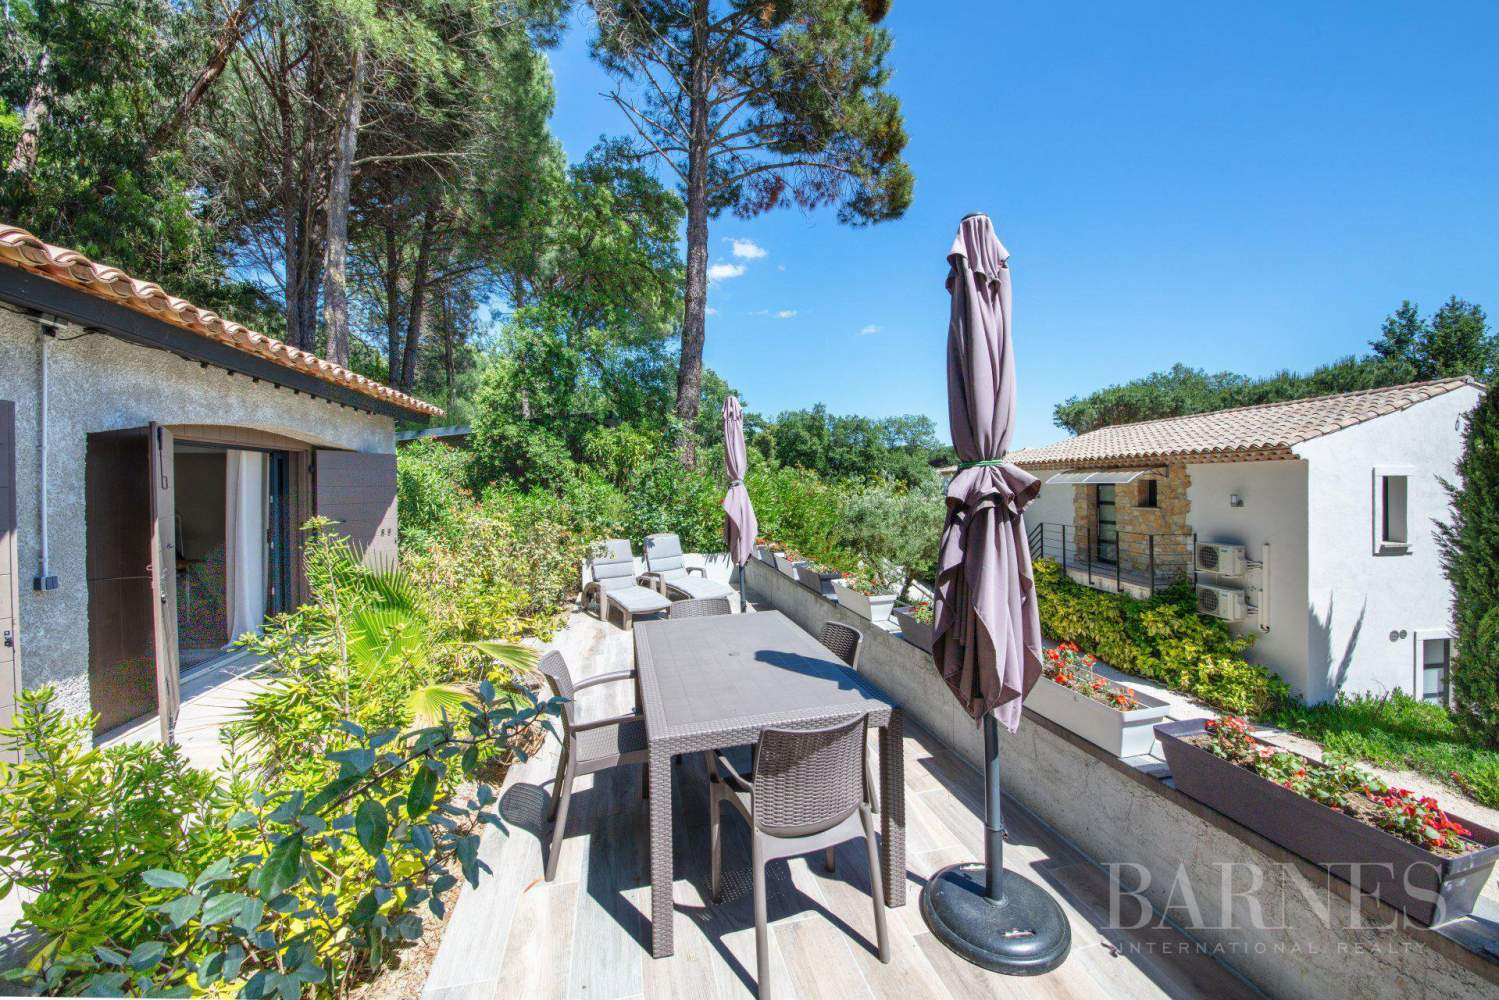 Gulf of Saint-Tropez - Grimaud - Charming guest house picture 7